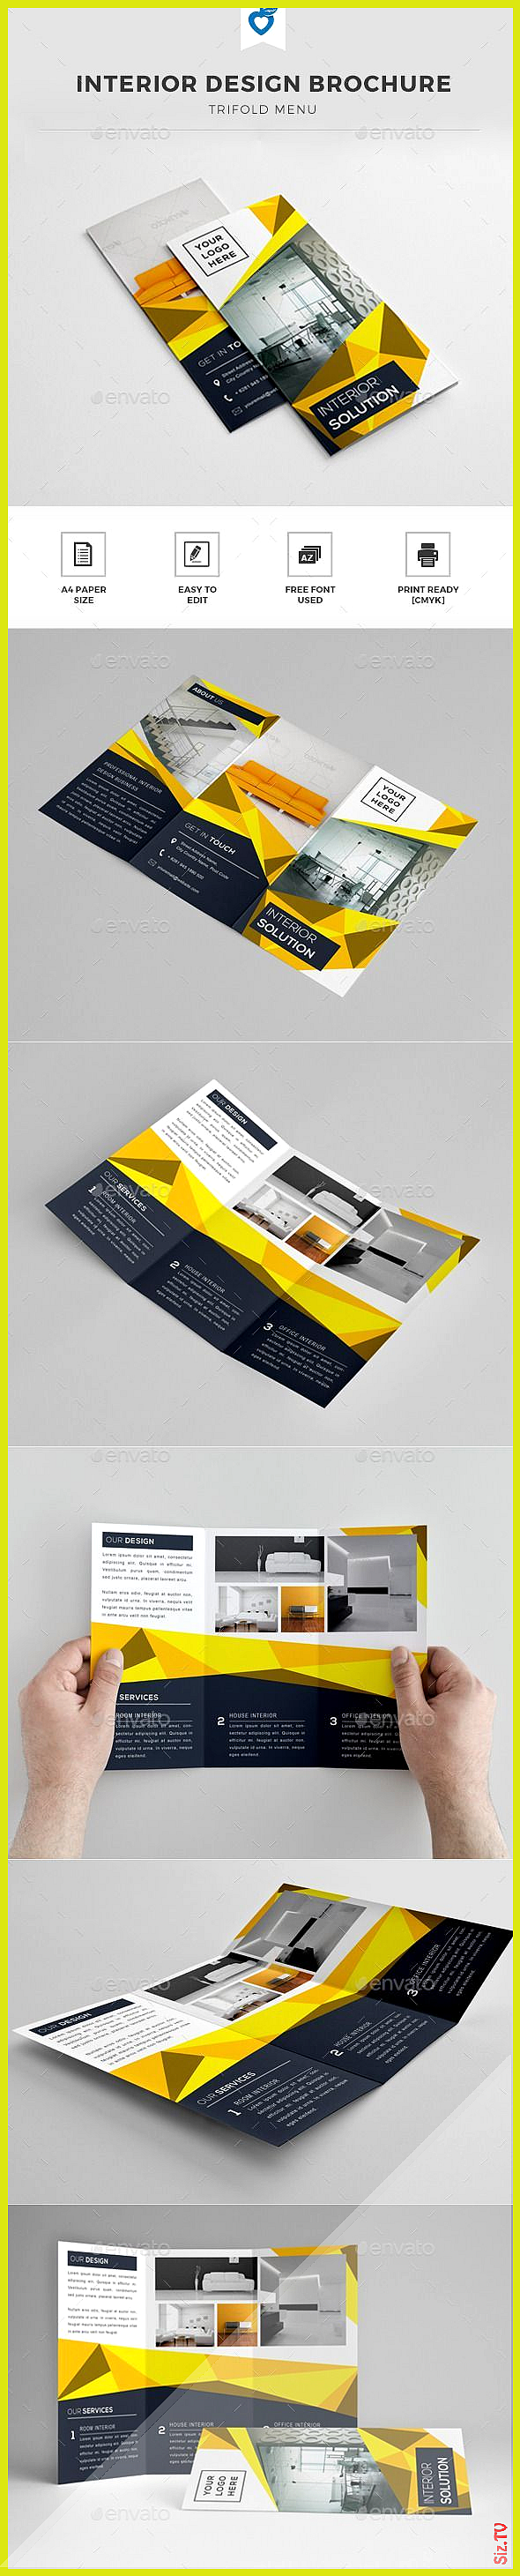 Interior design brochure template design print Download graphicriver  Decoration homedecor homedesig...